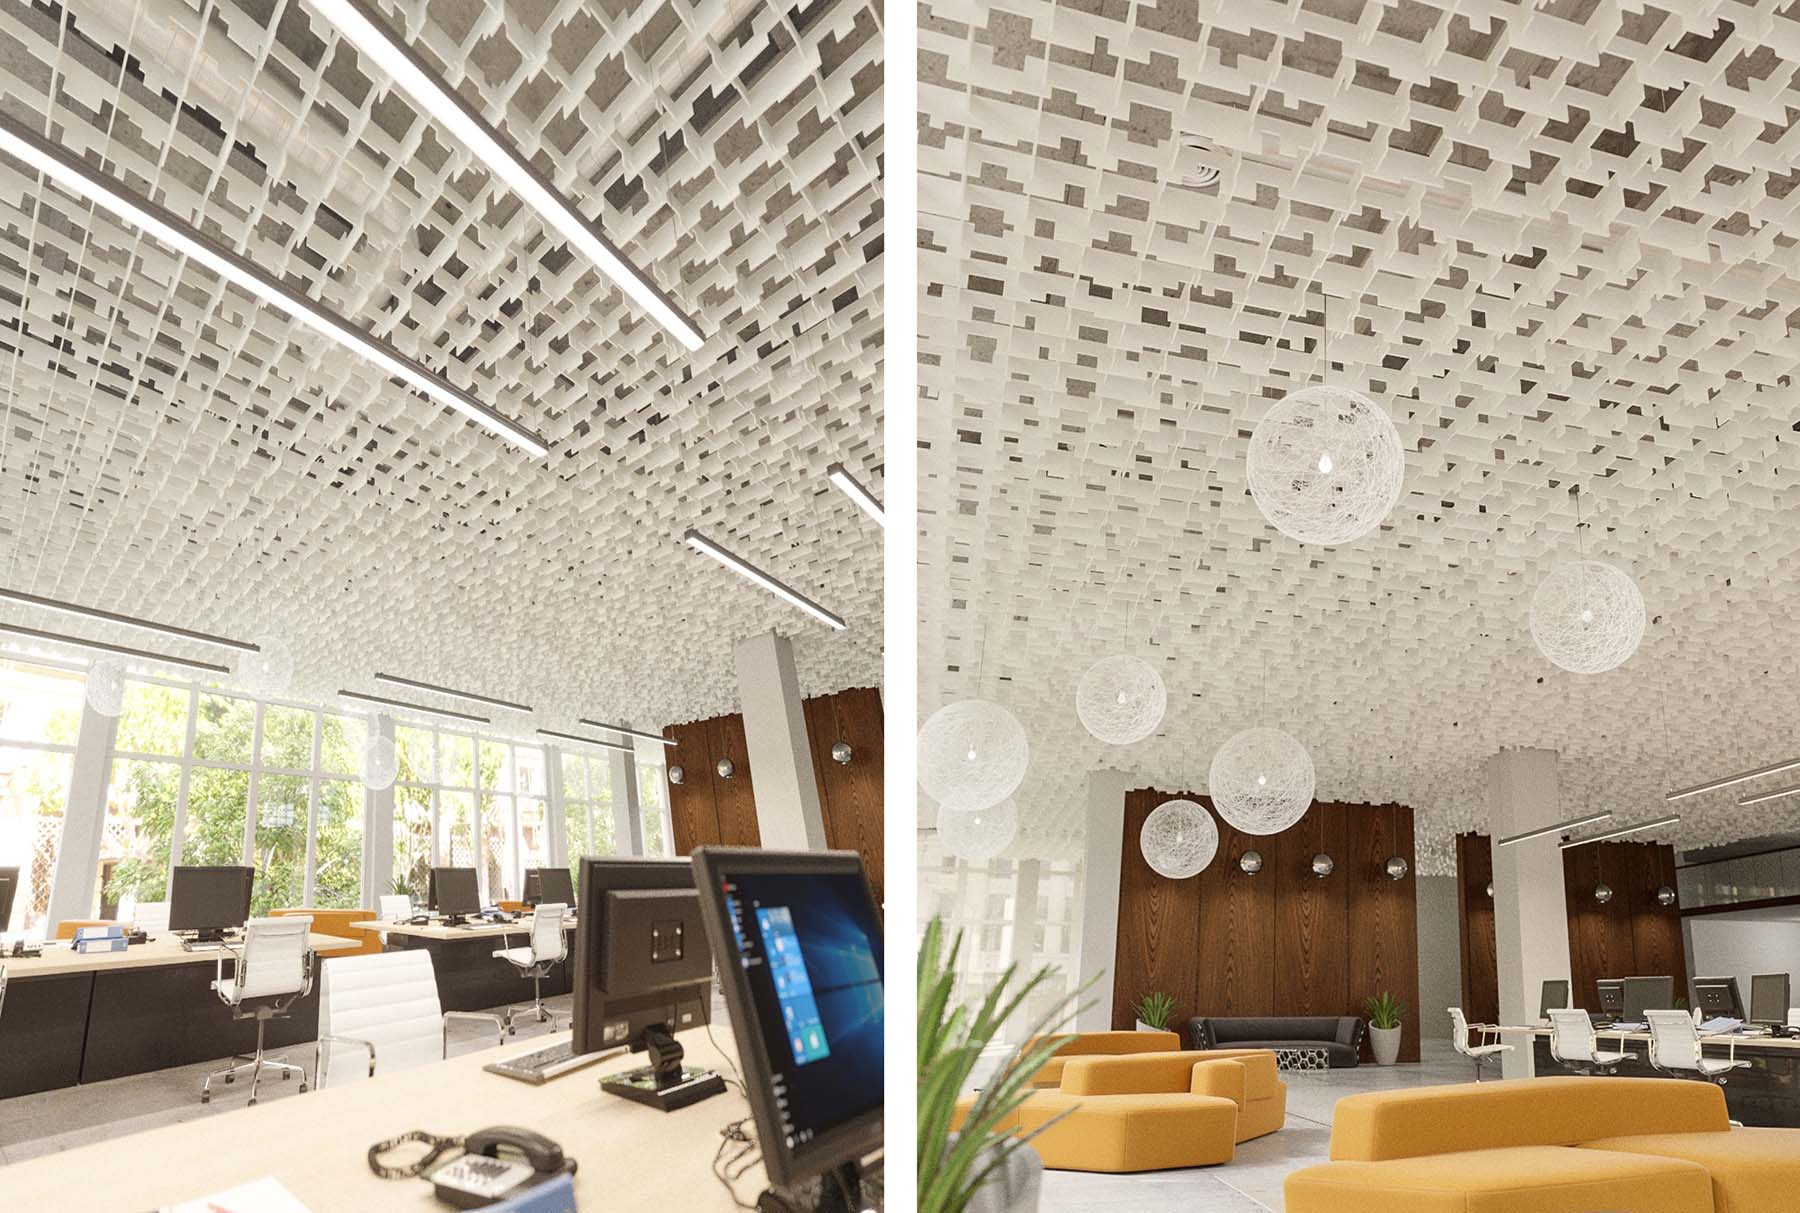 SoftGrid® Skyline acoustical system installed in office.